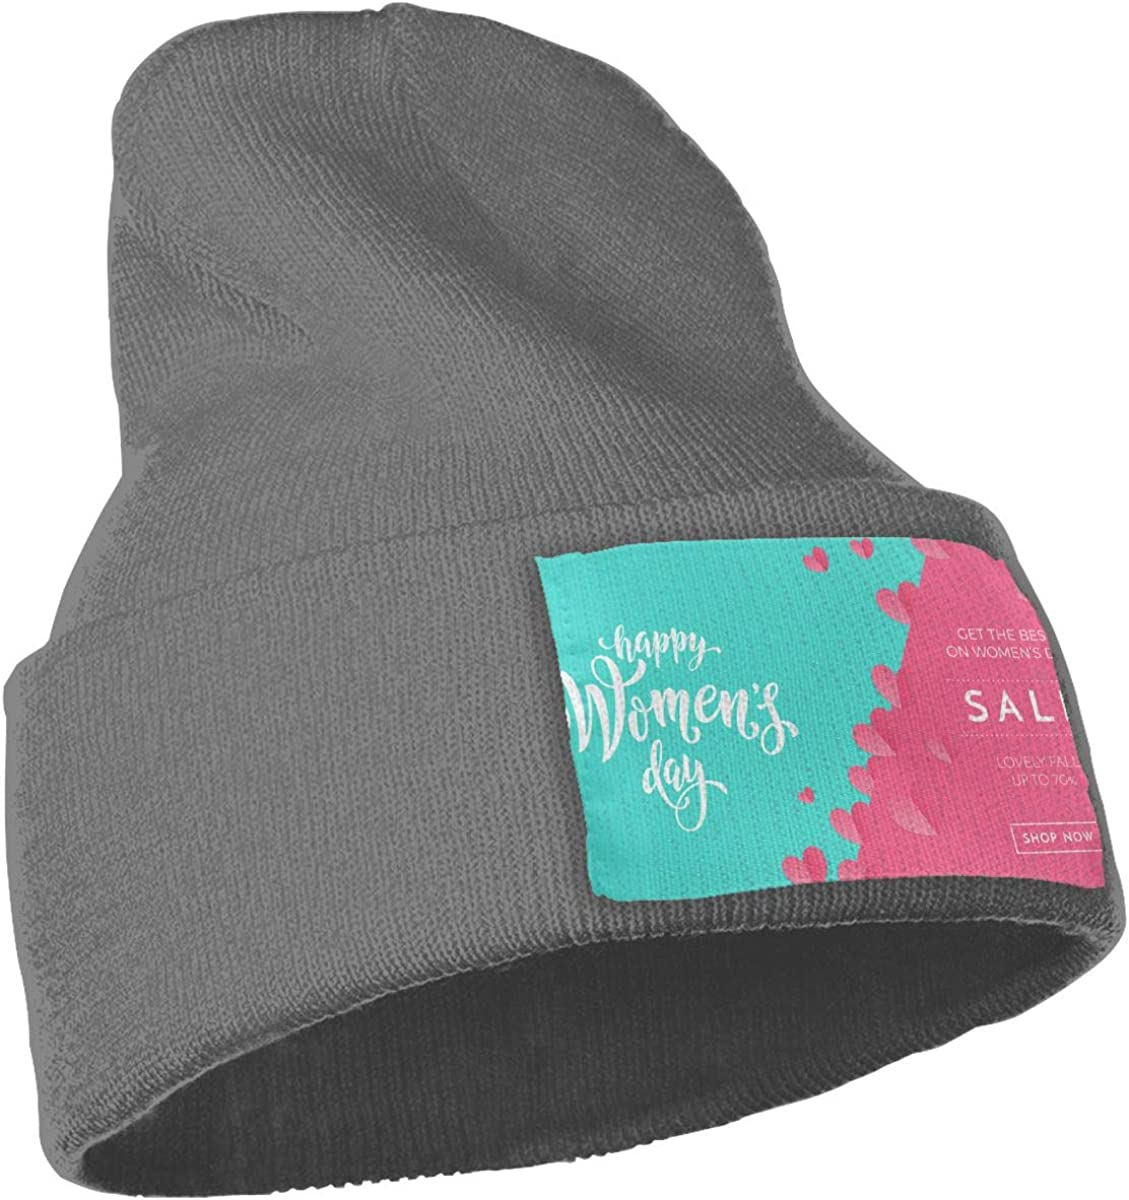 Green and Pink Background Art Unisex Fashion Knitted Hat Luxury Hip-Hop Cap